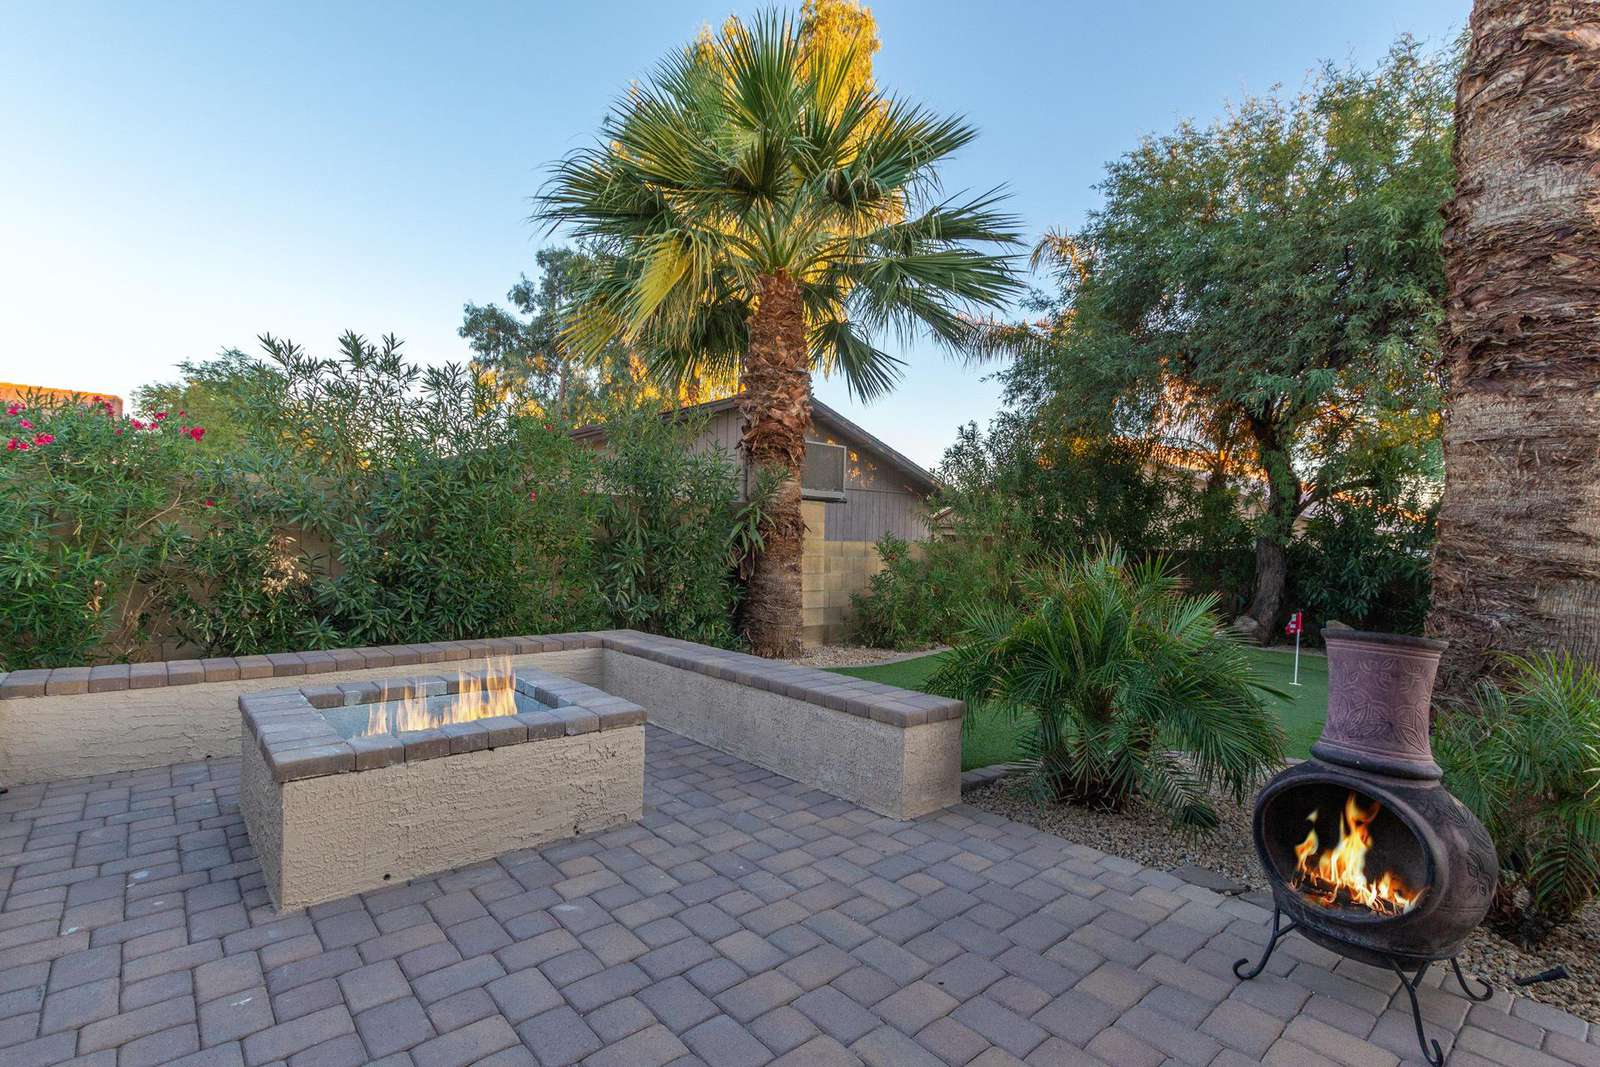 Two Fire Pits (Guests Provide Wood)